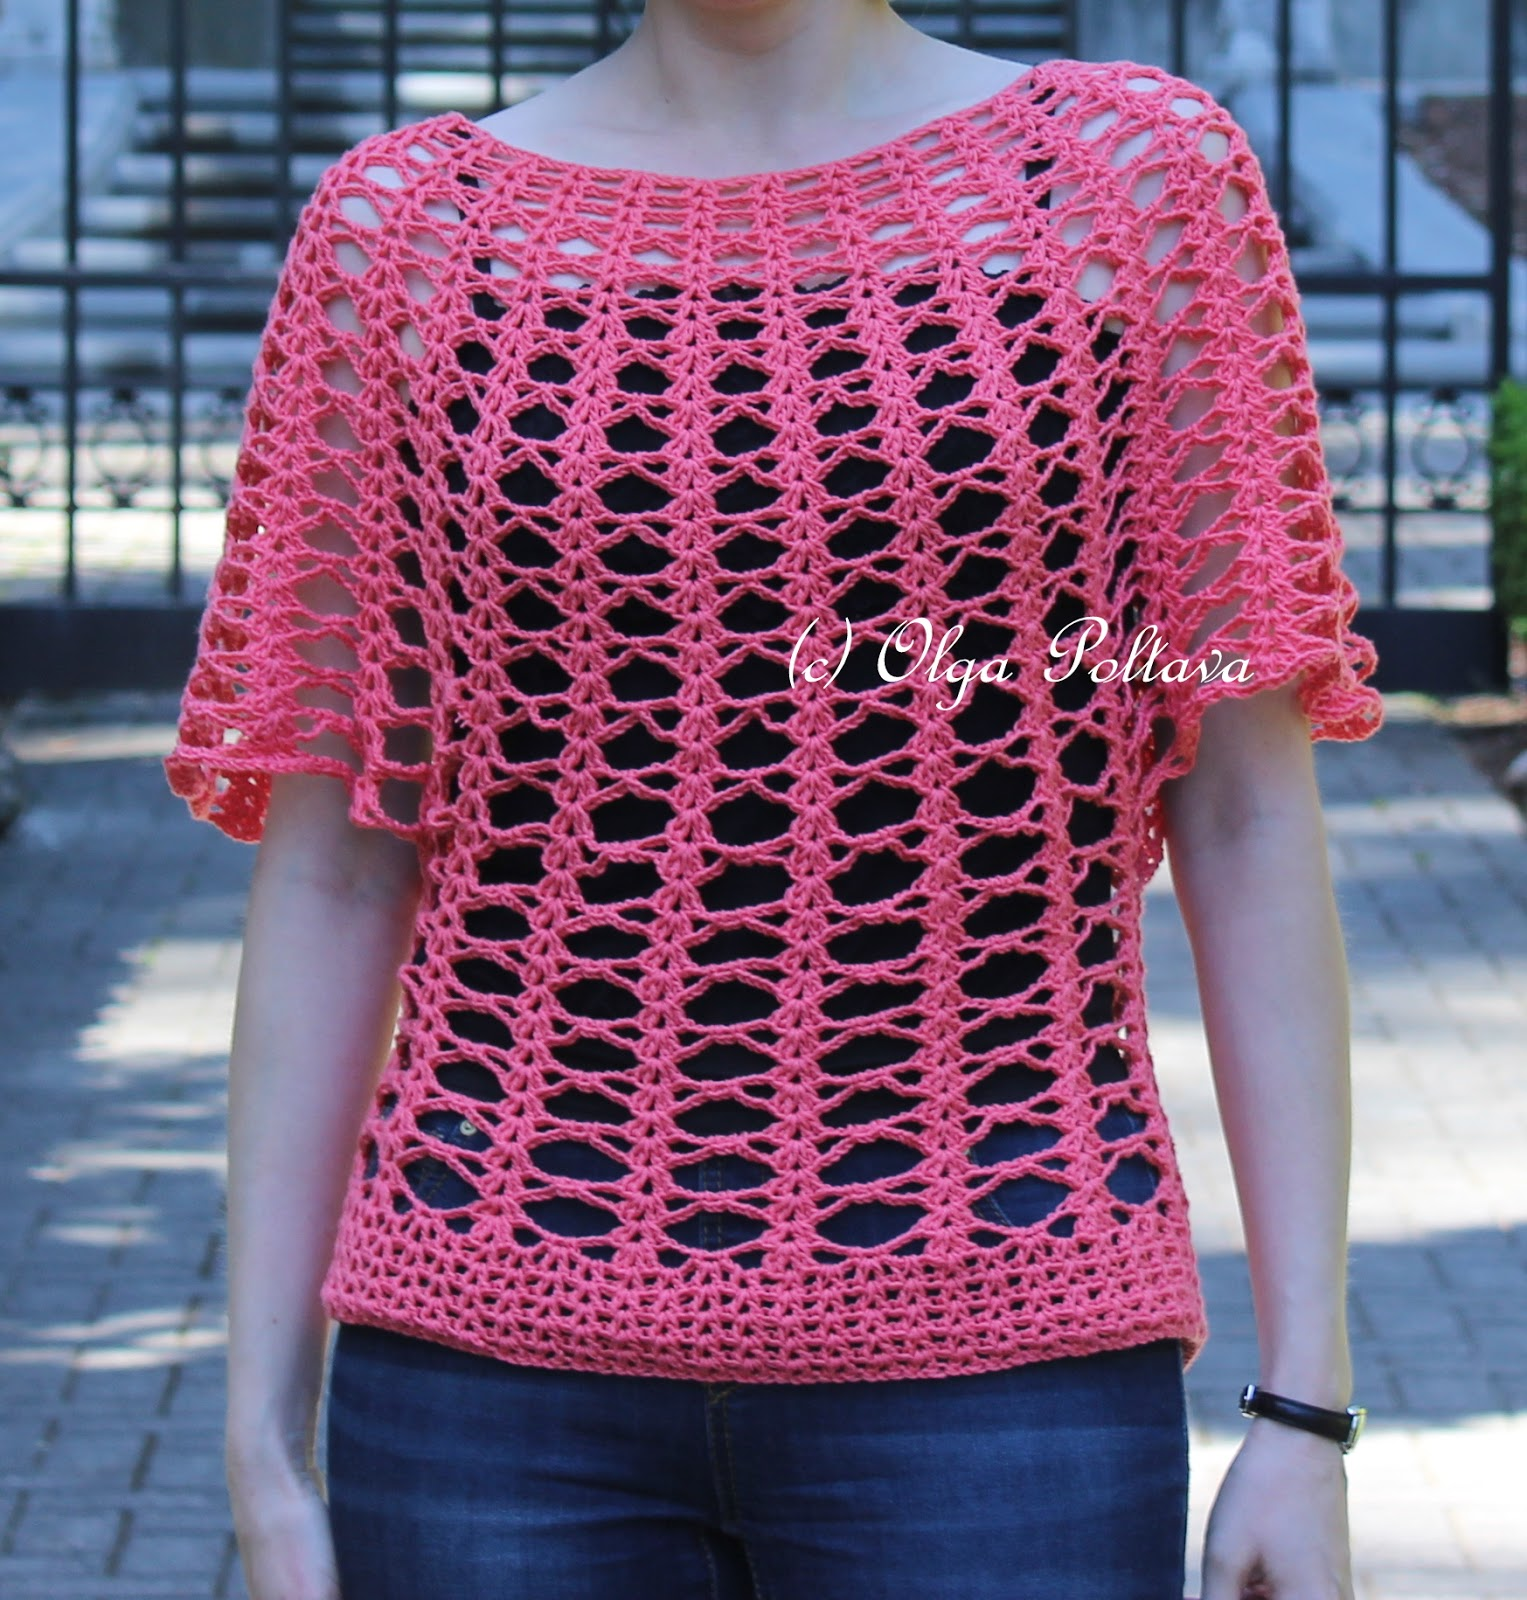 Summer Crochet Patterns : Lacy Crochet: Summer Lace Top, Cotton Fair by Premier Yarns